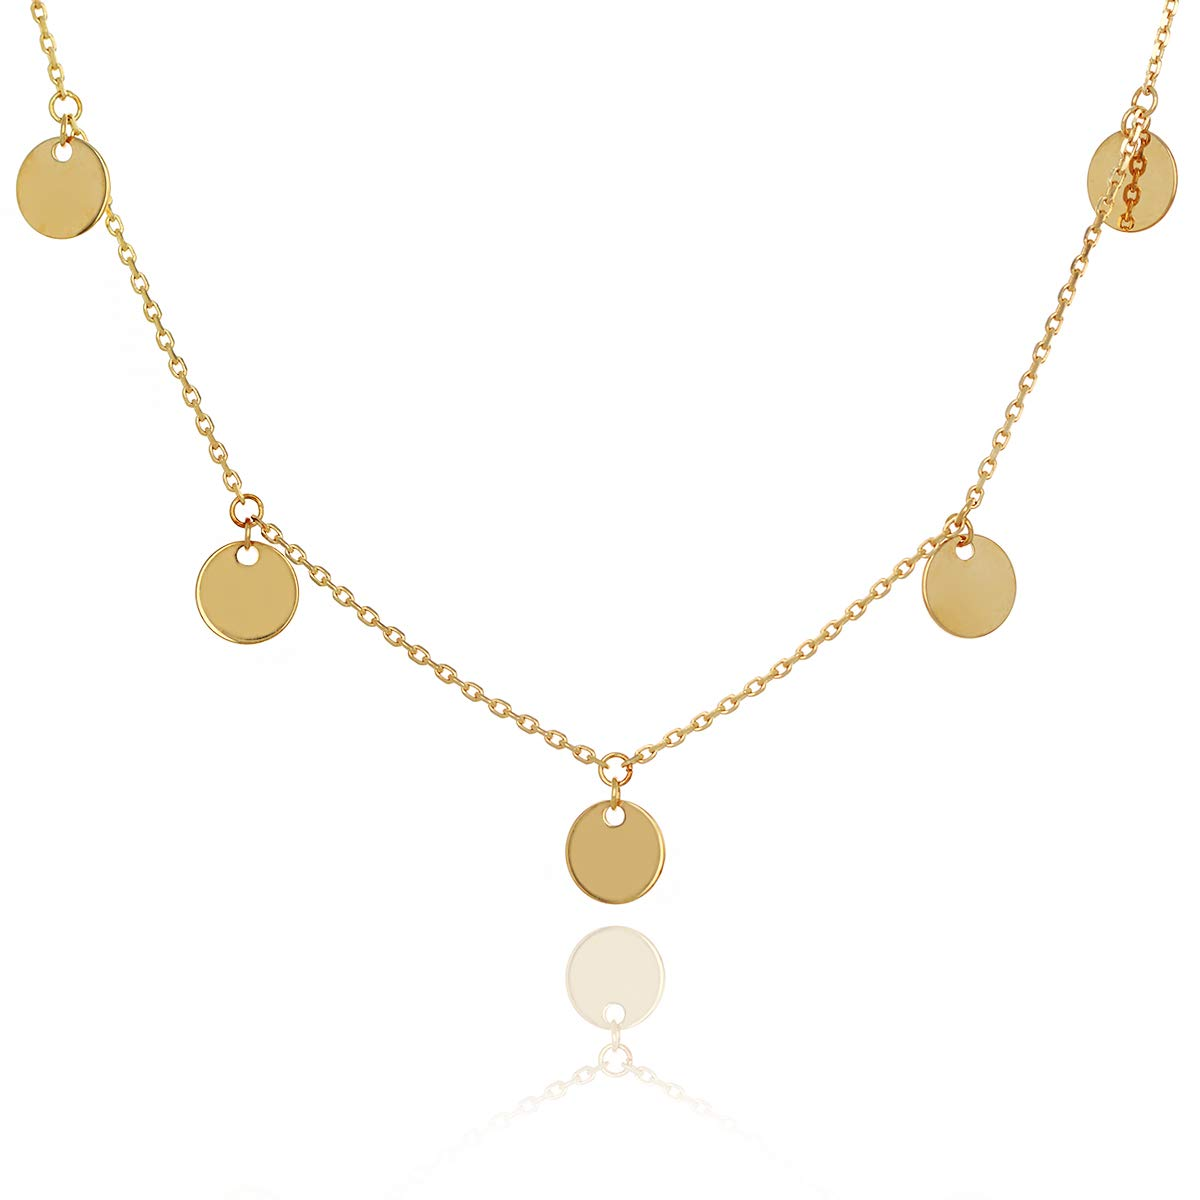 COODI Jewelry 14K Solid Gold Disc Charm Choker Necklace Fully Adjustable Length Layering Necklace (14K Yellow Gold)